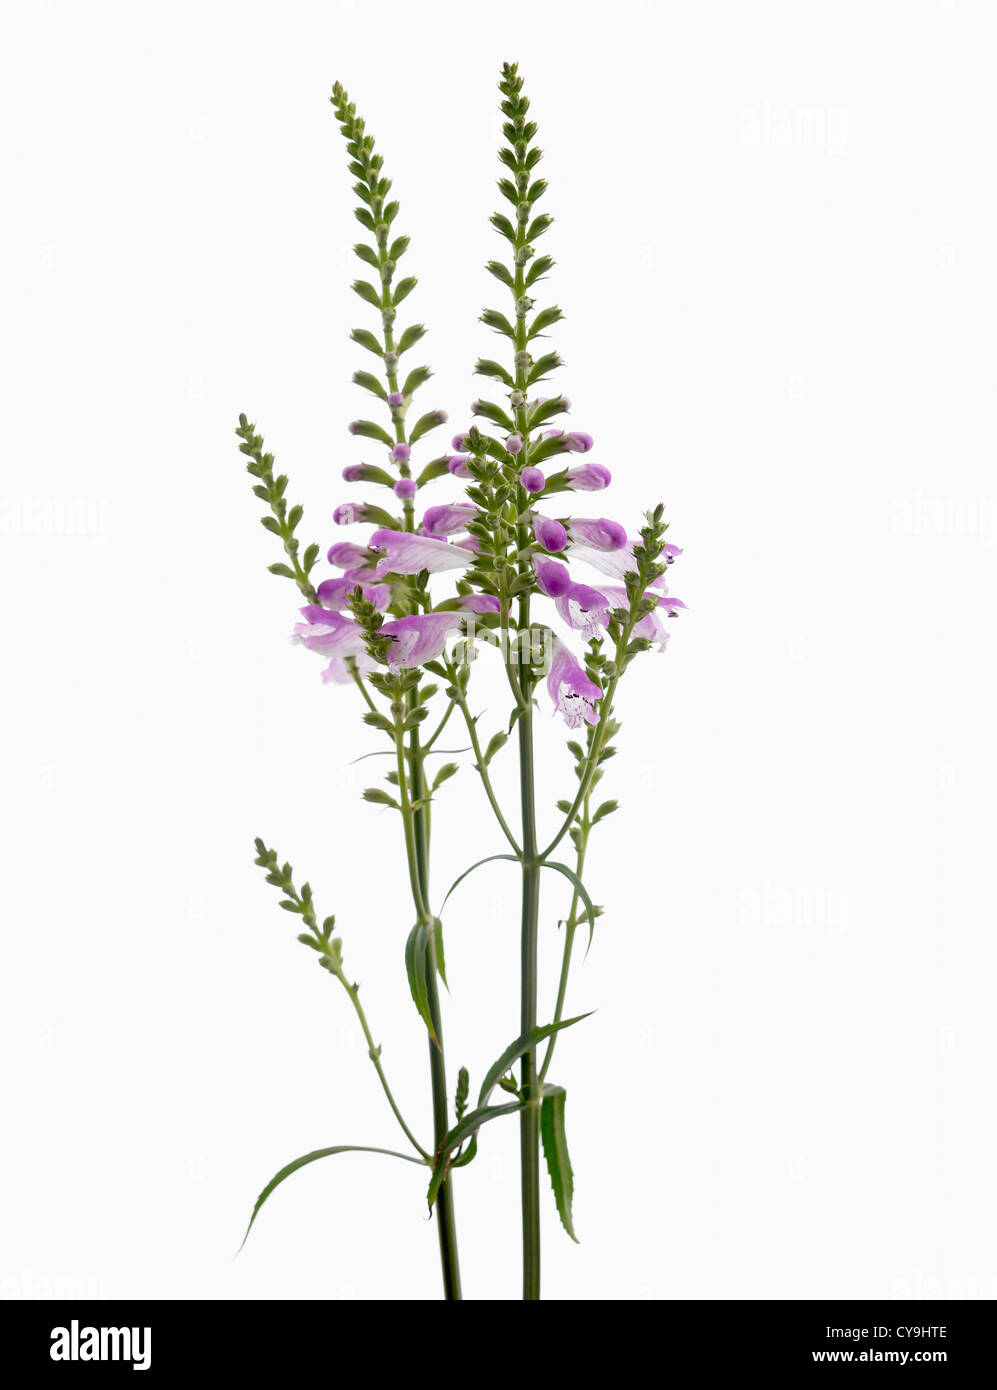 Physostegia virginiana, Obedient plant with purple flowers on upright stems against a white background. Stock Photo